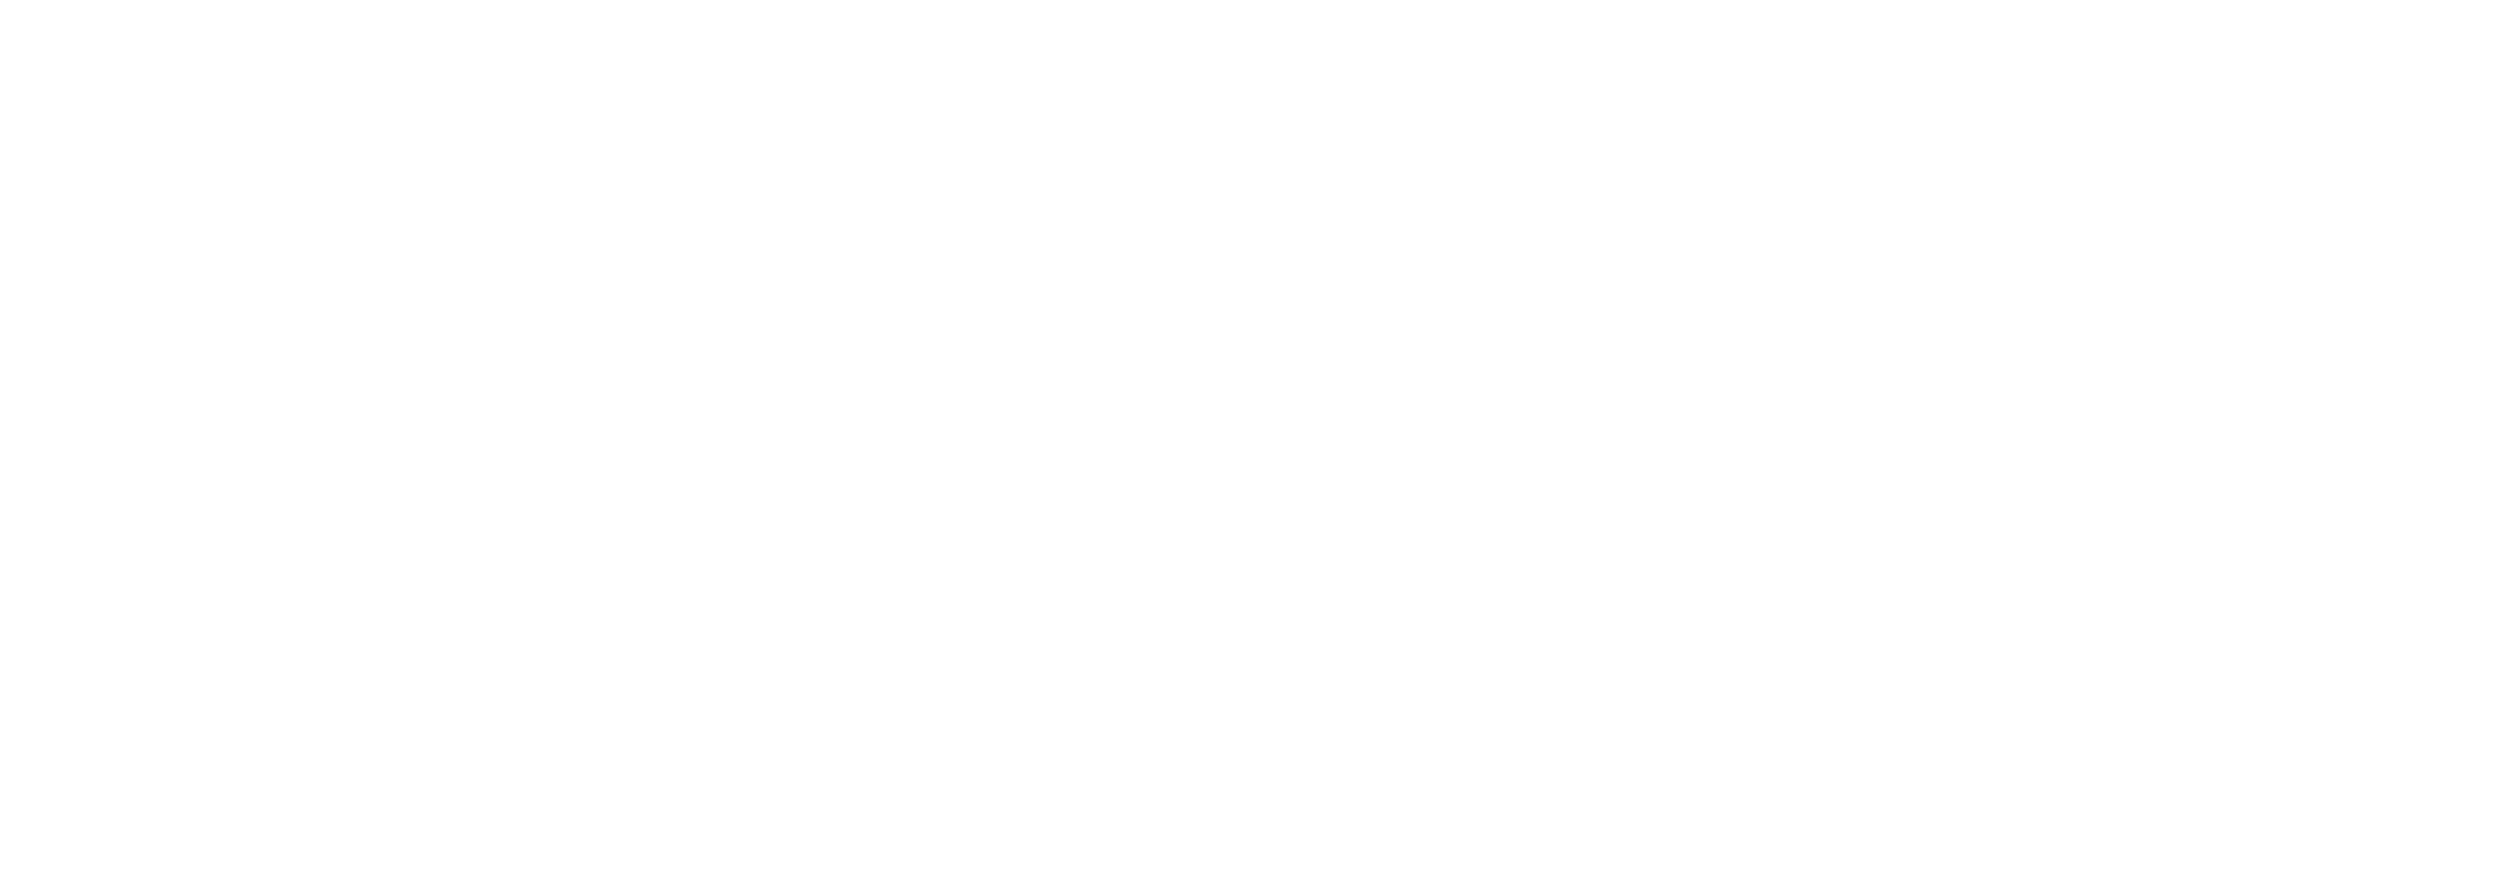 REACH PHYSICAL THERAPY (LOGO) WHITE NO BG.png